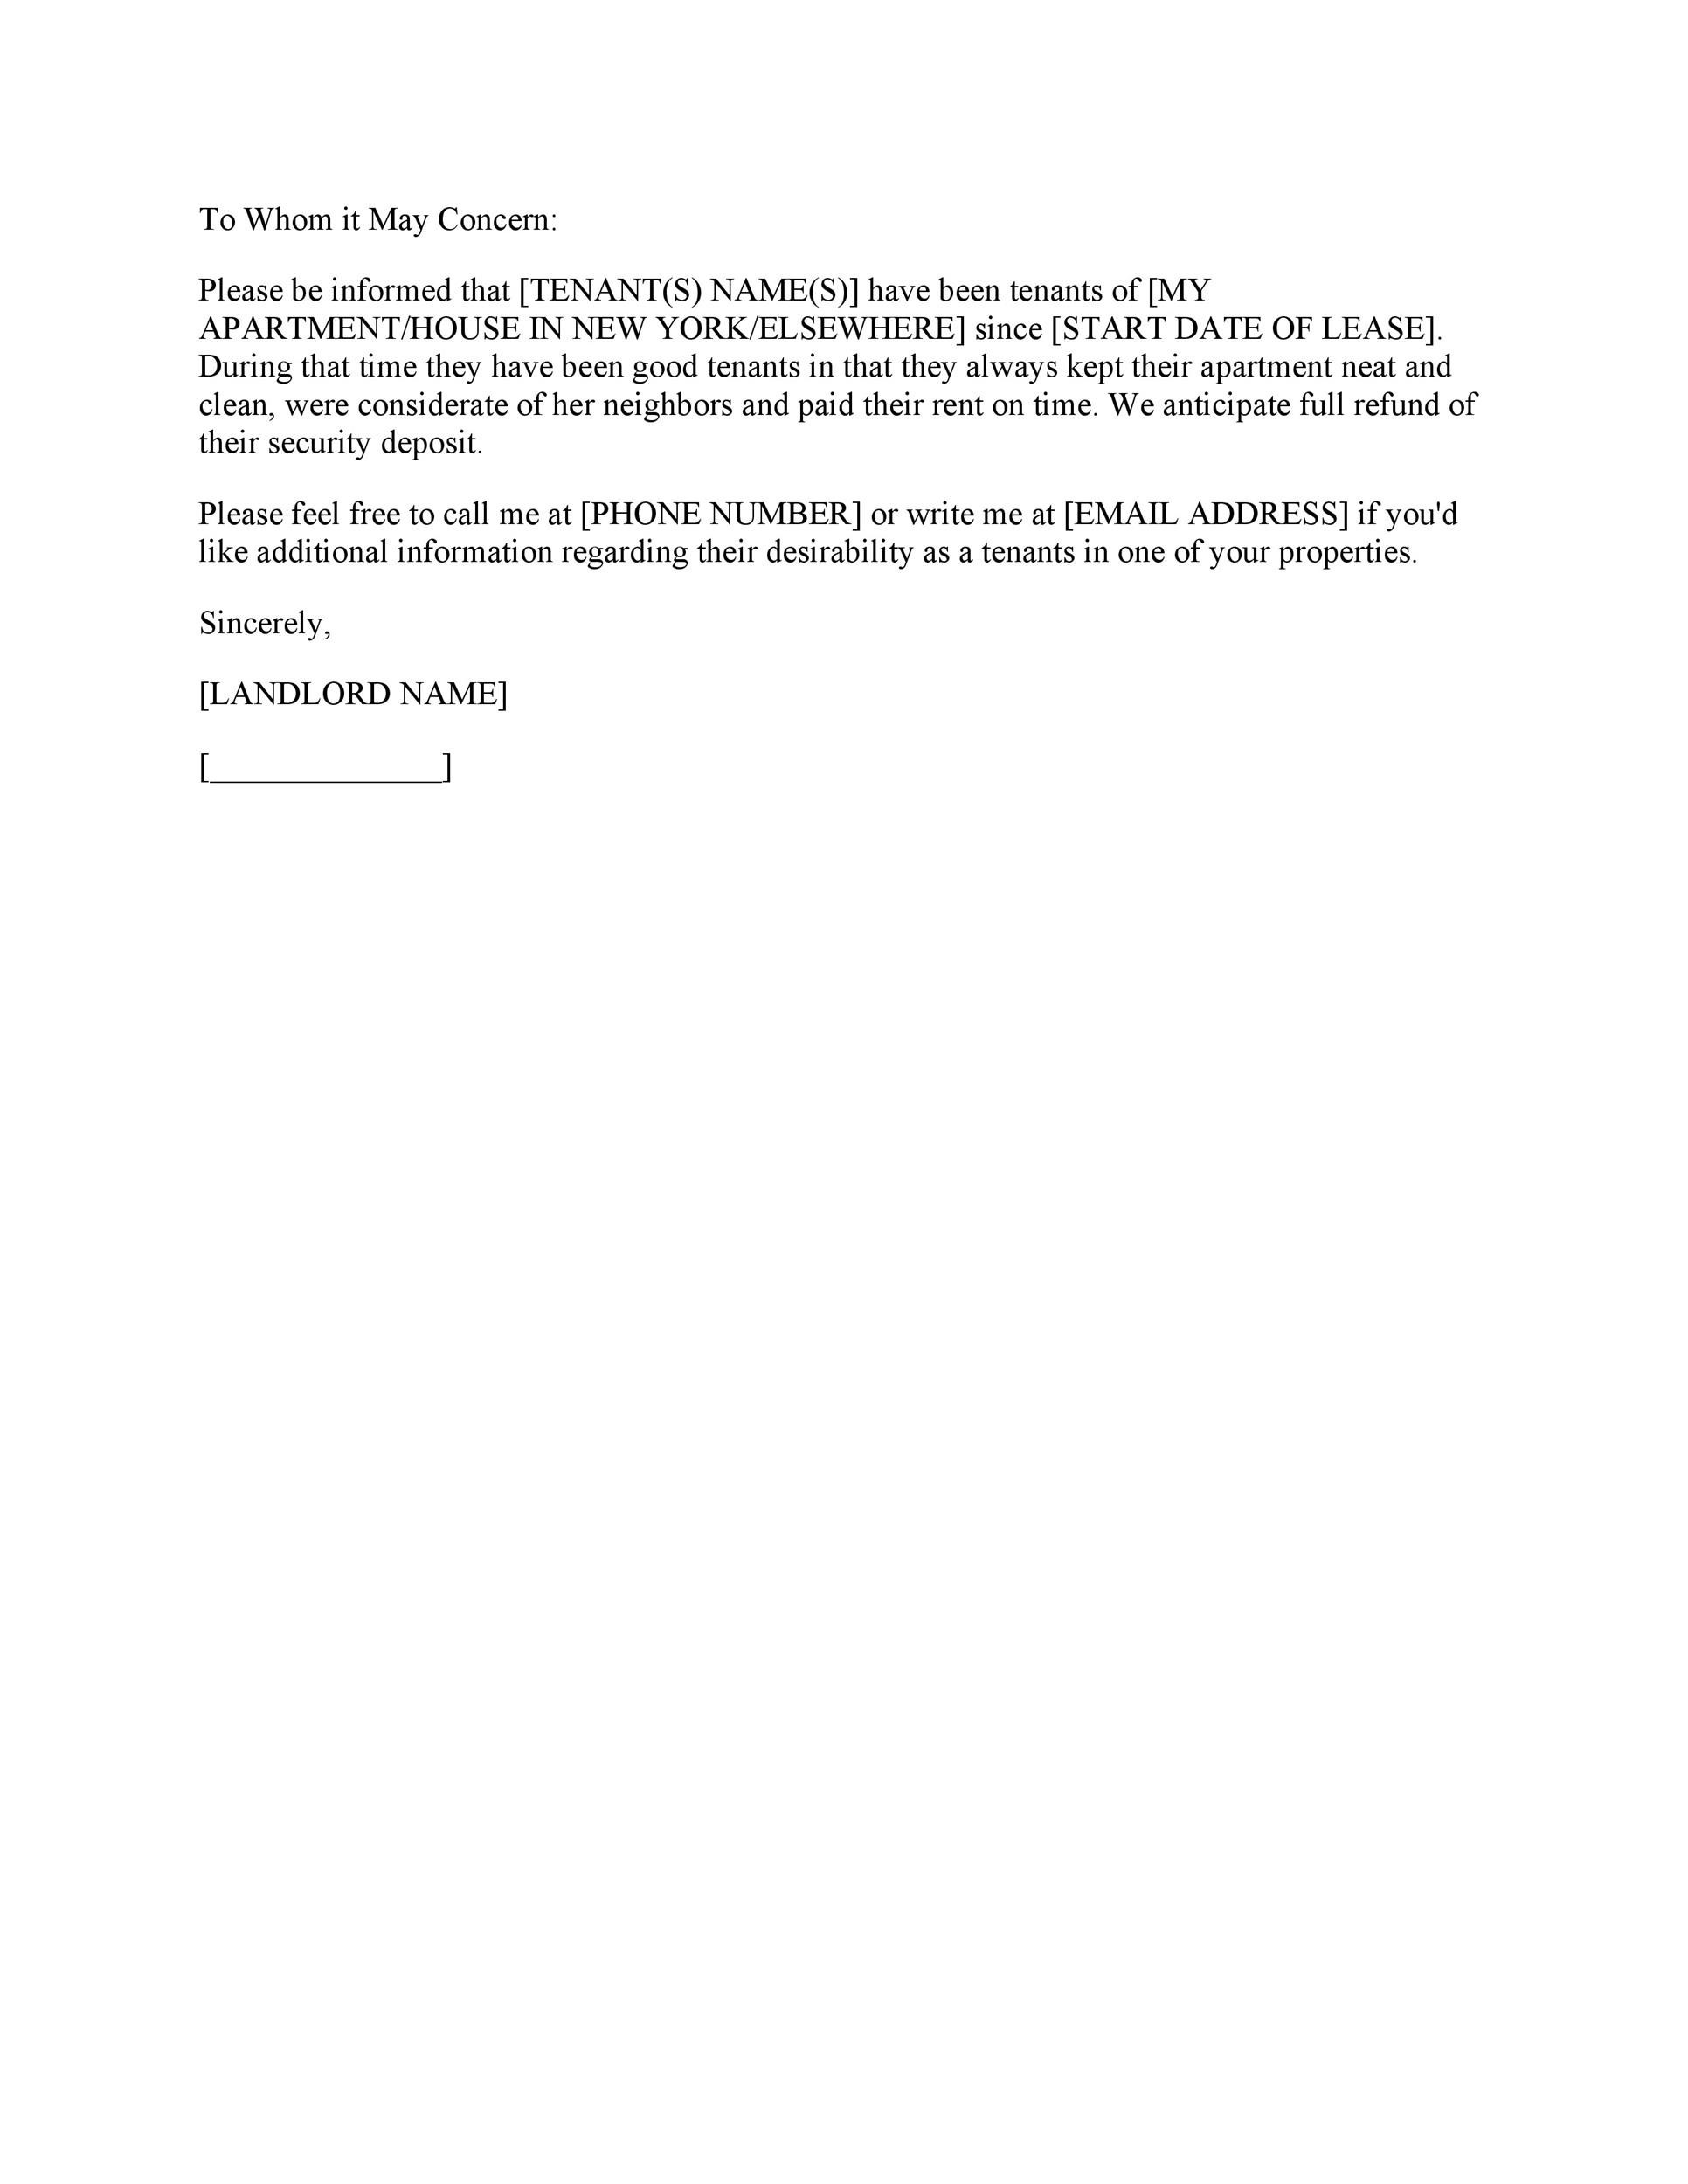 Free landlord reference letter 18